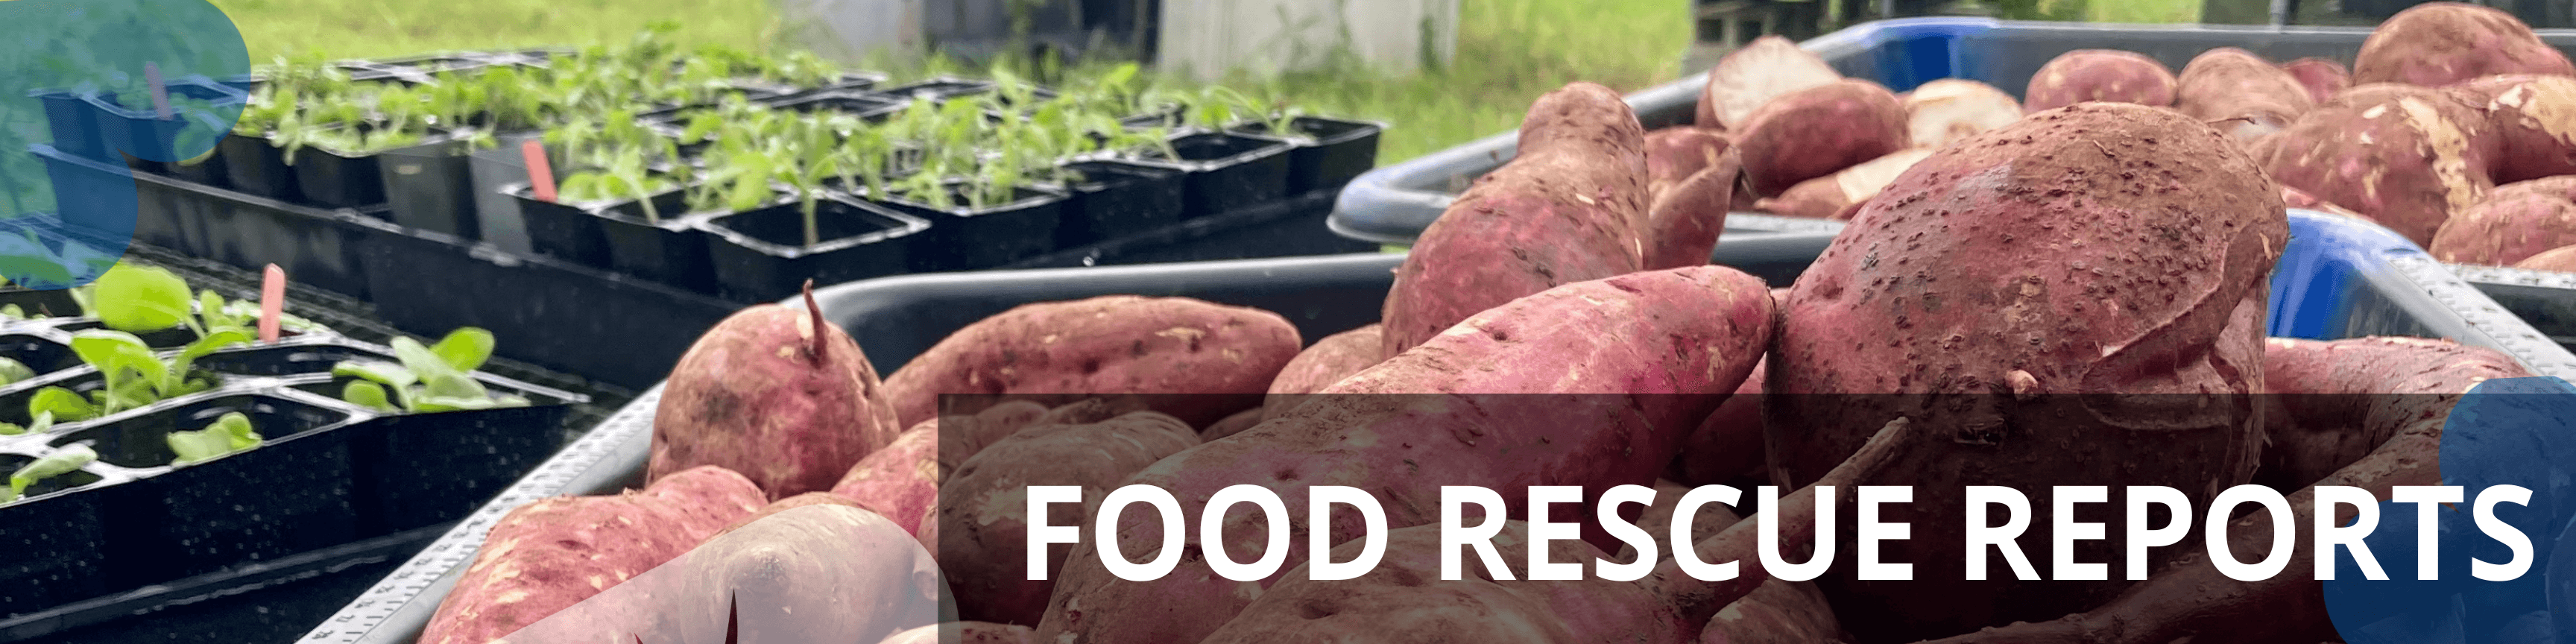 Food rescue reports page banner_LP